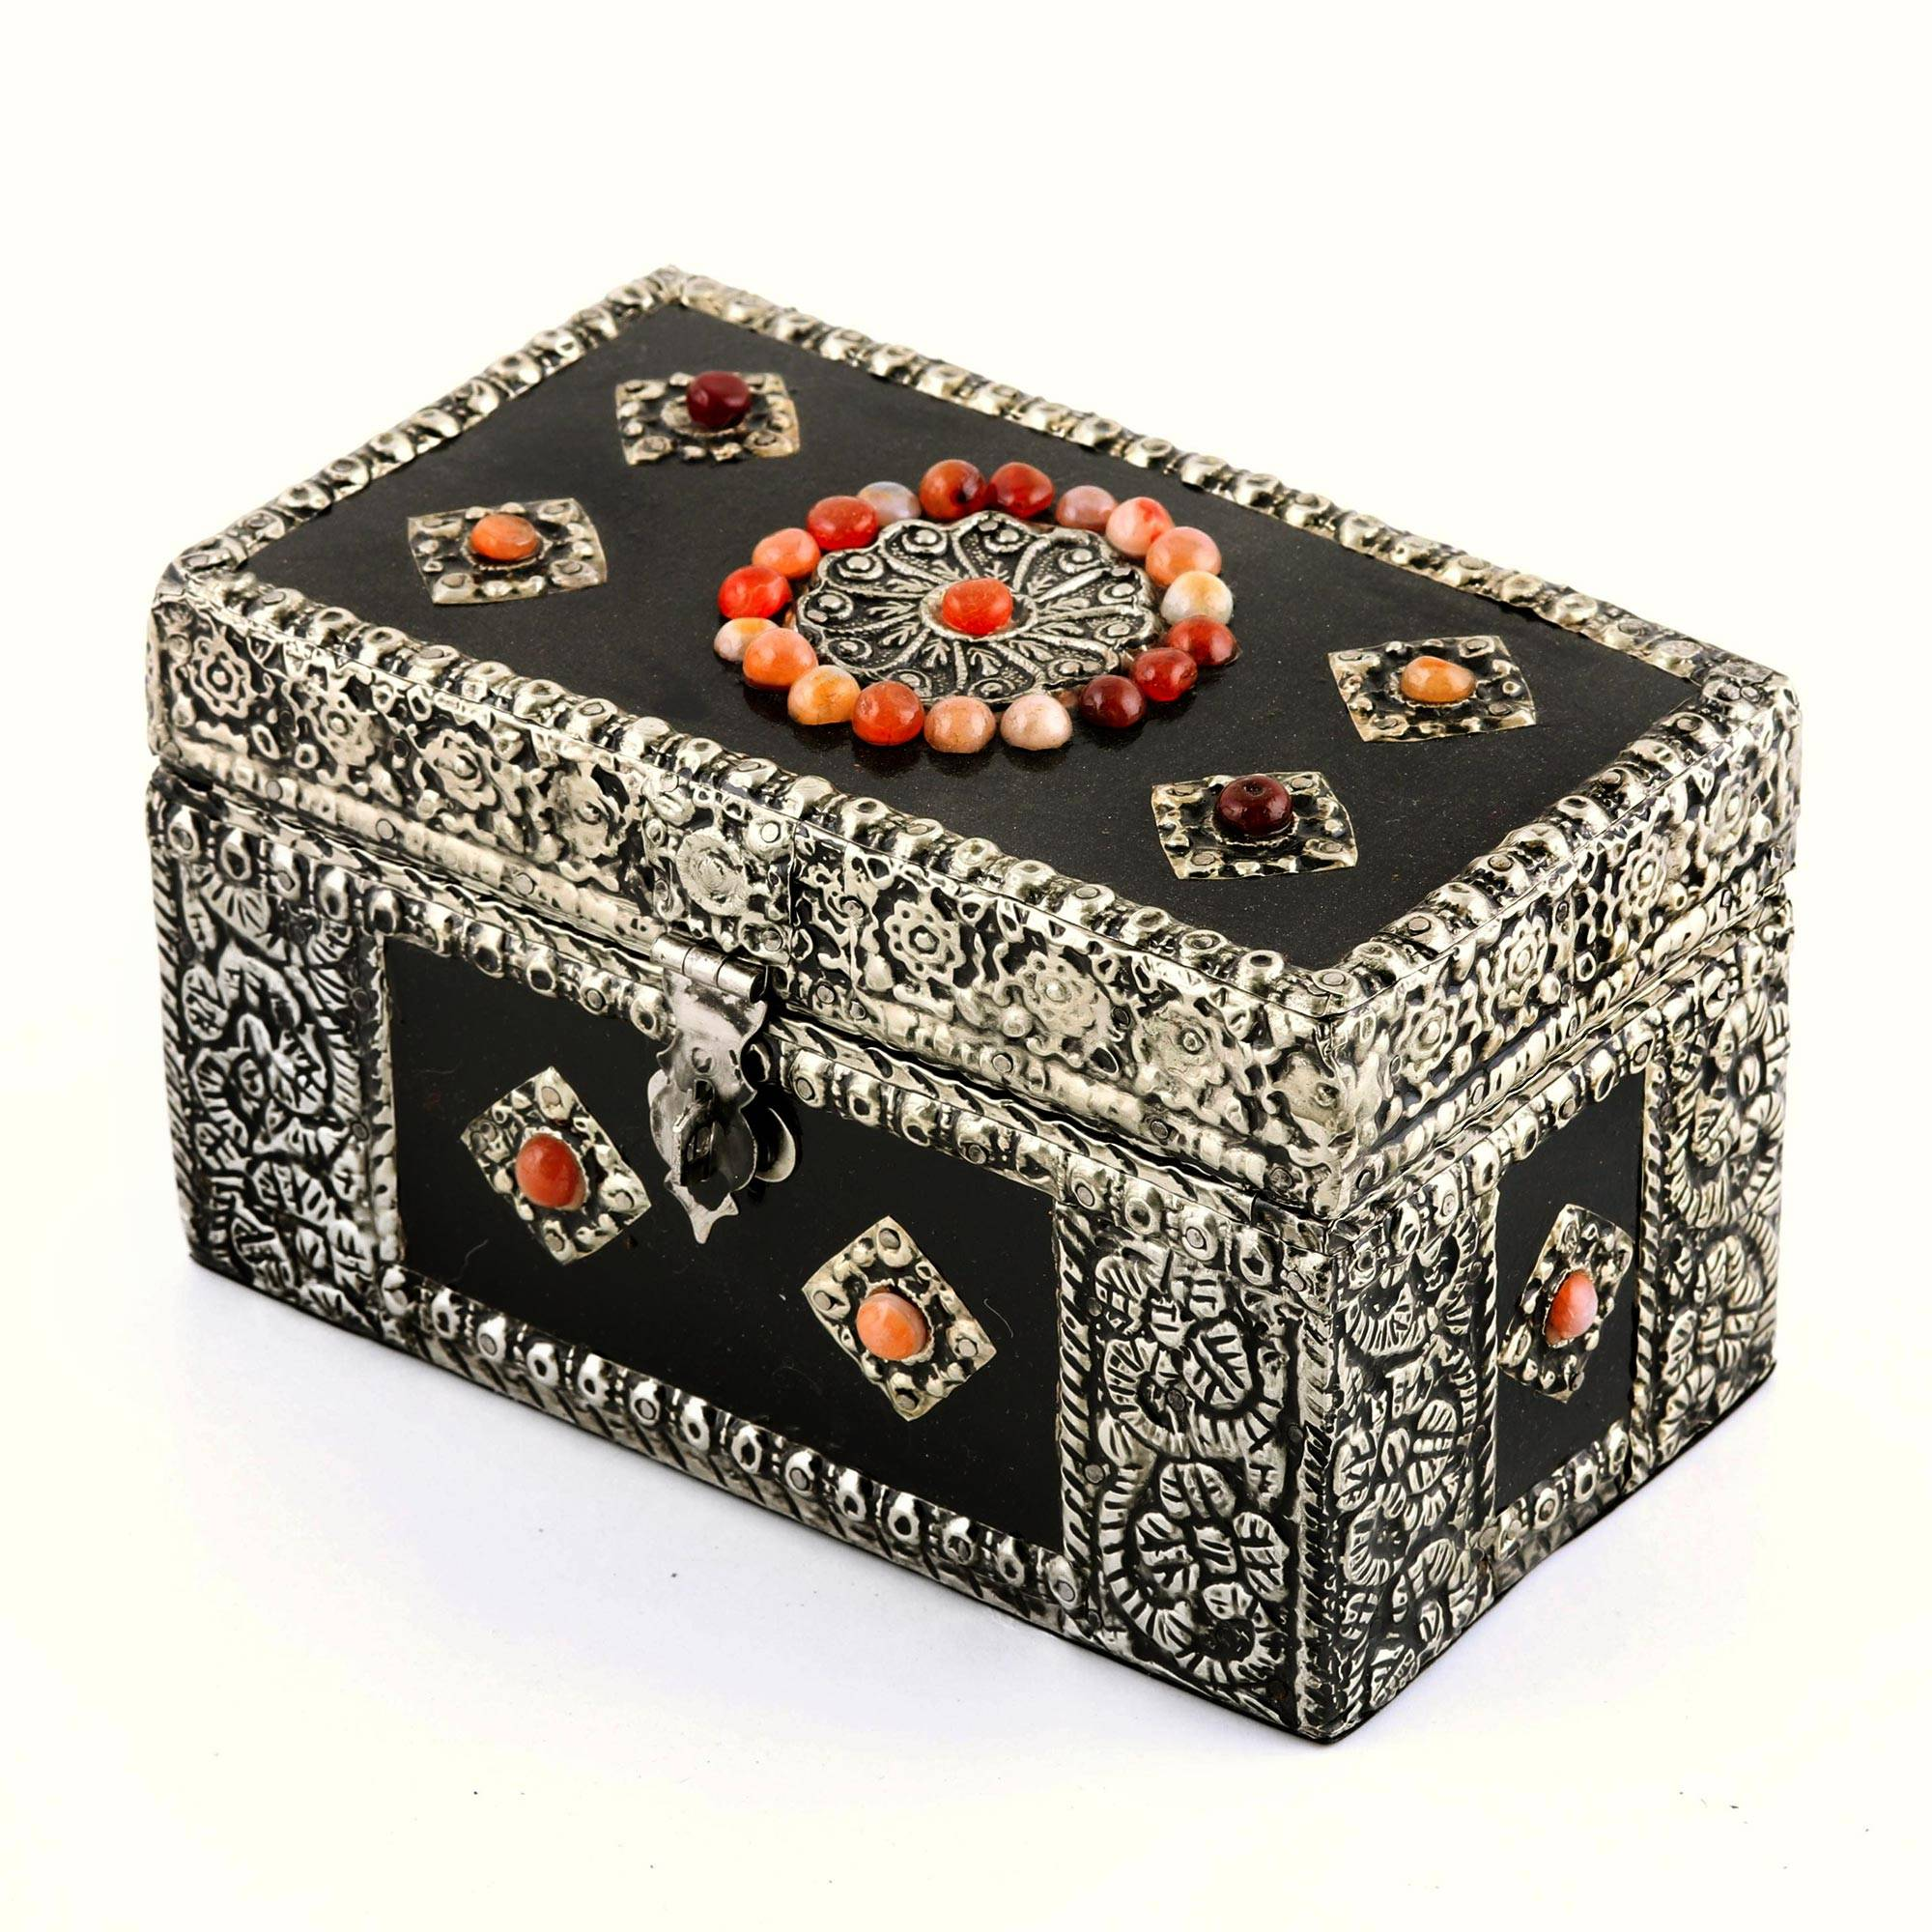 World Market Jewelry Box Enchanting Handcrafted Repousse Brass Jewelry Box Treasure Chest NOVICA